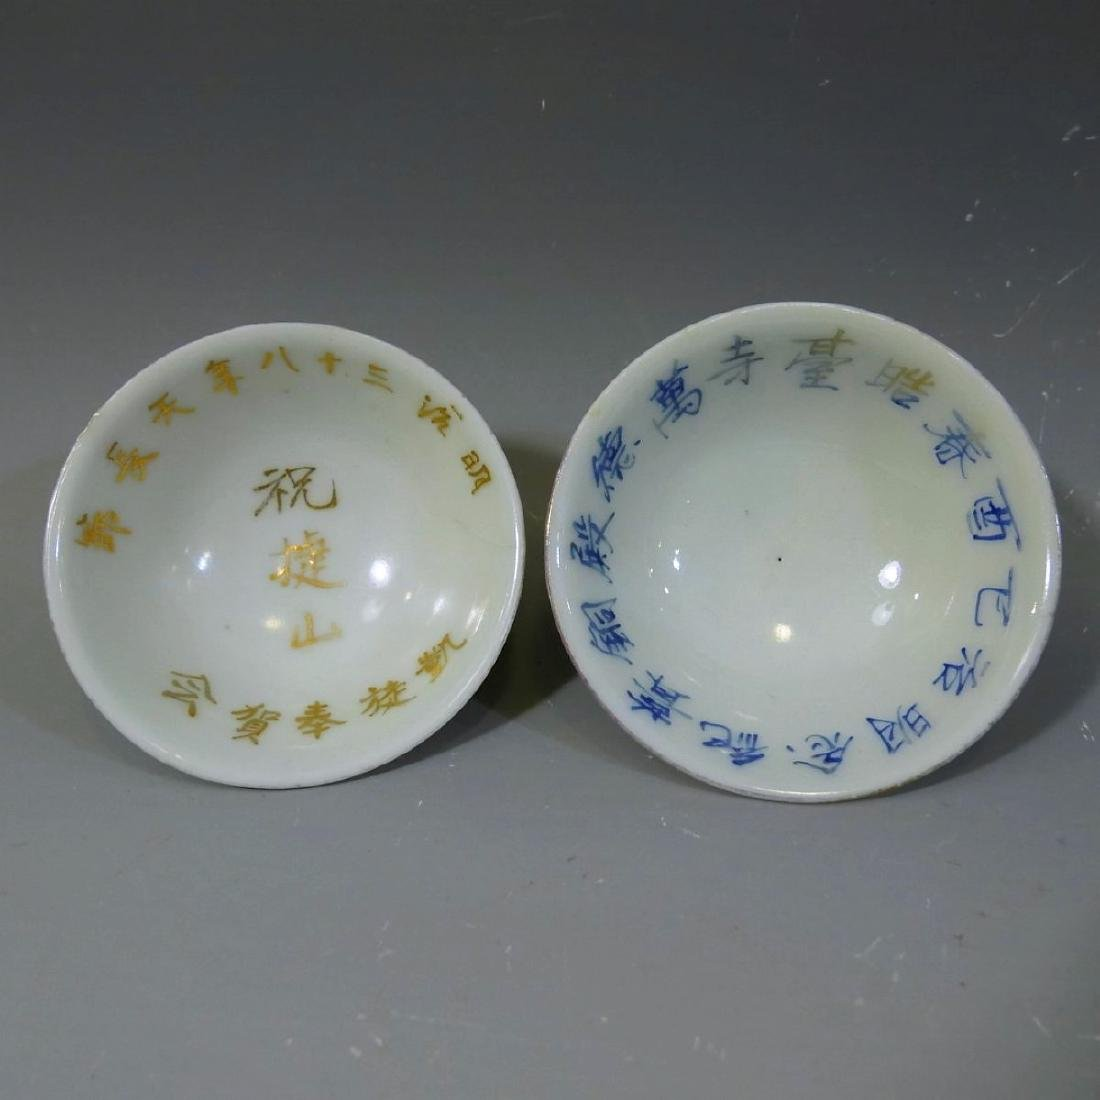 TWO ANTIQUE JAPANESE PORCELAIN CUPS COMMEMORATING